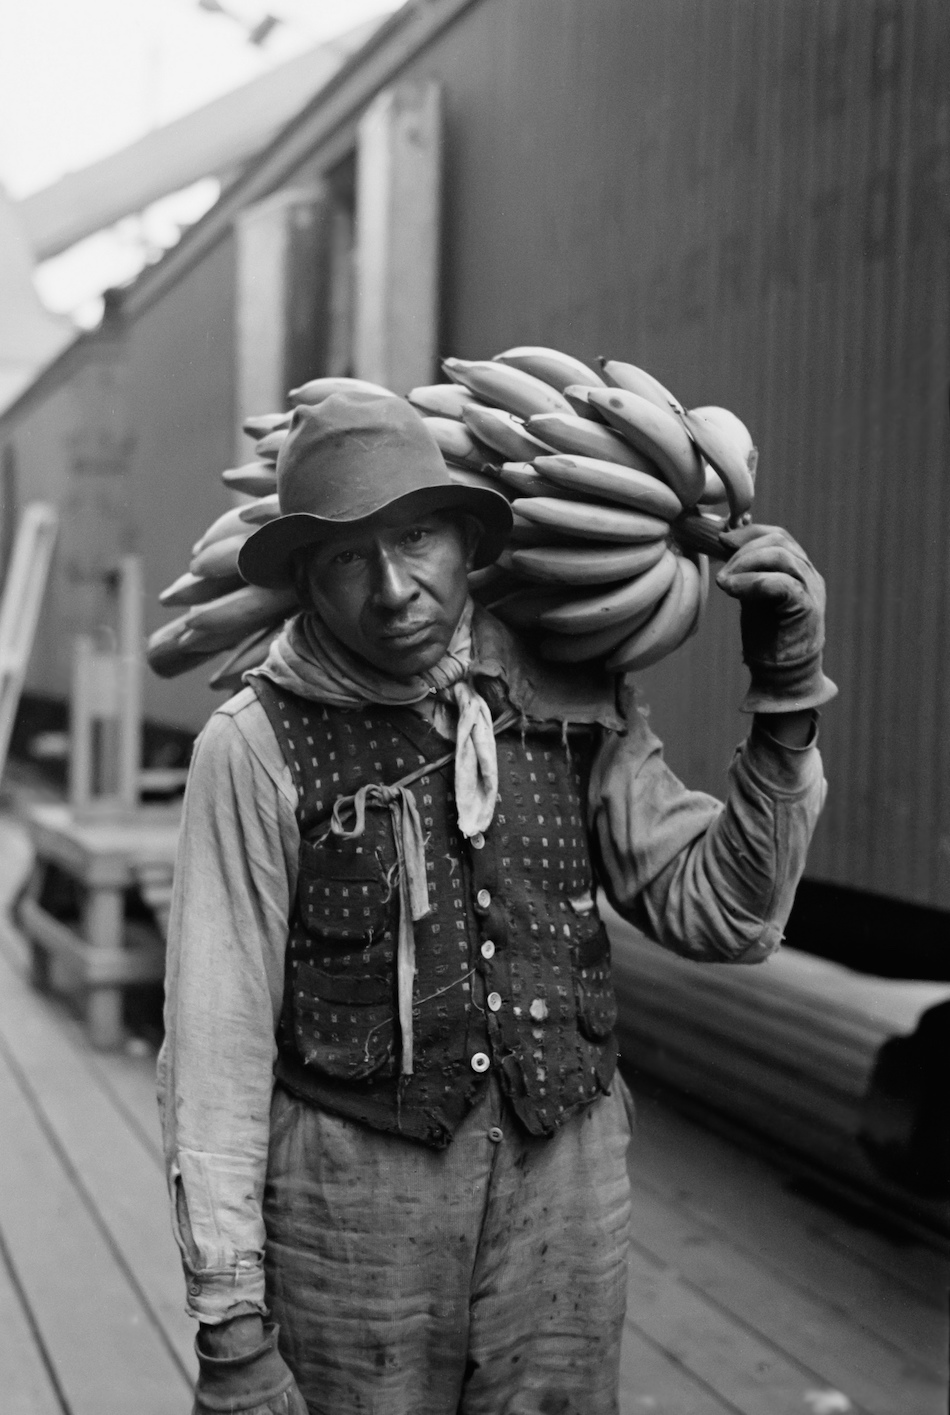 A worker offloading bananas in Mobile, Alabama in 1937. Photo Credit: C. Thomas Anderson/ Flickr (CC By 2.0)